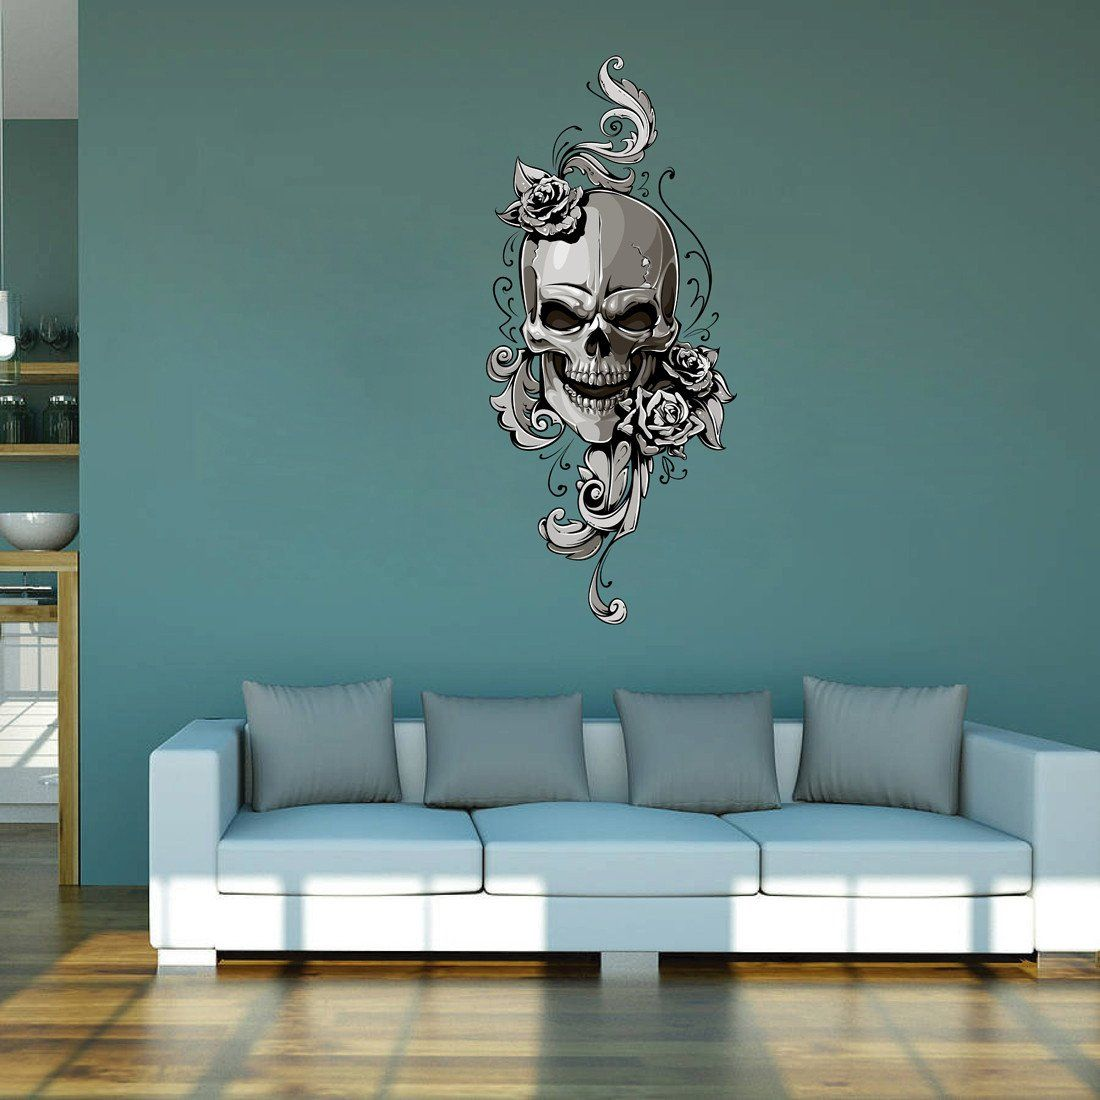 Cik543 Full Color Wall Decal Skull Monogram Flowers Living Bedroom Children Wall Colors Wall Decals Wall Decor